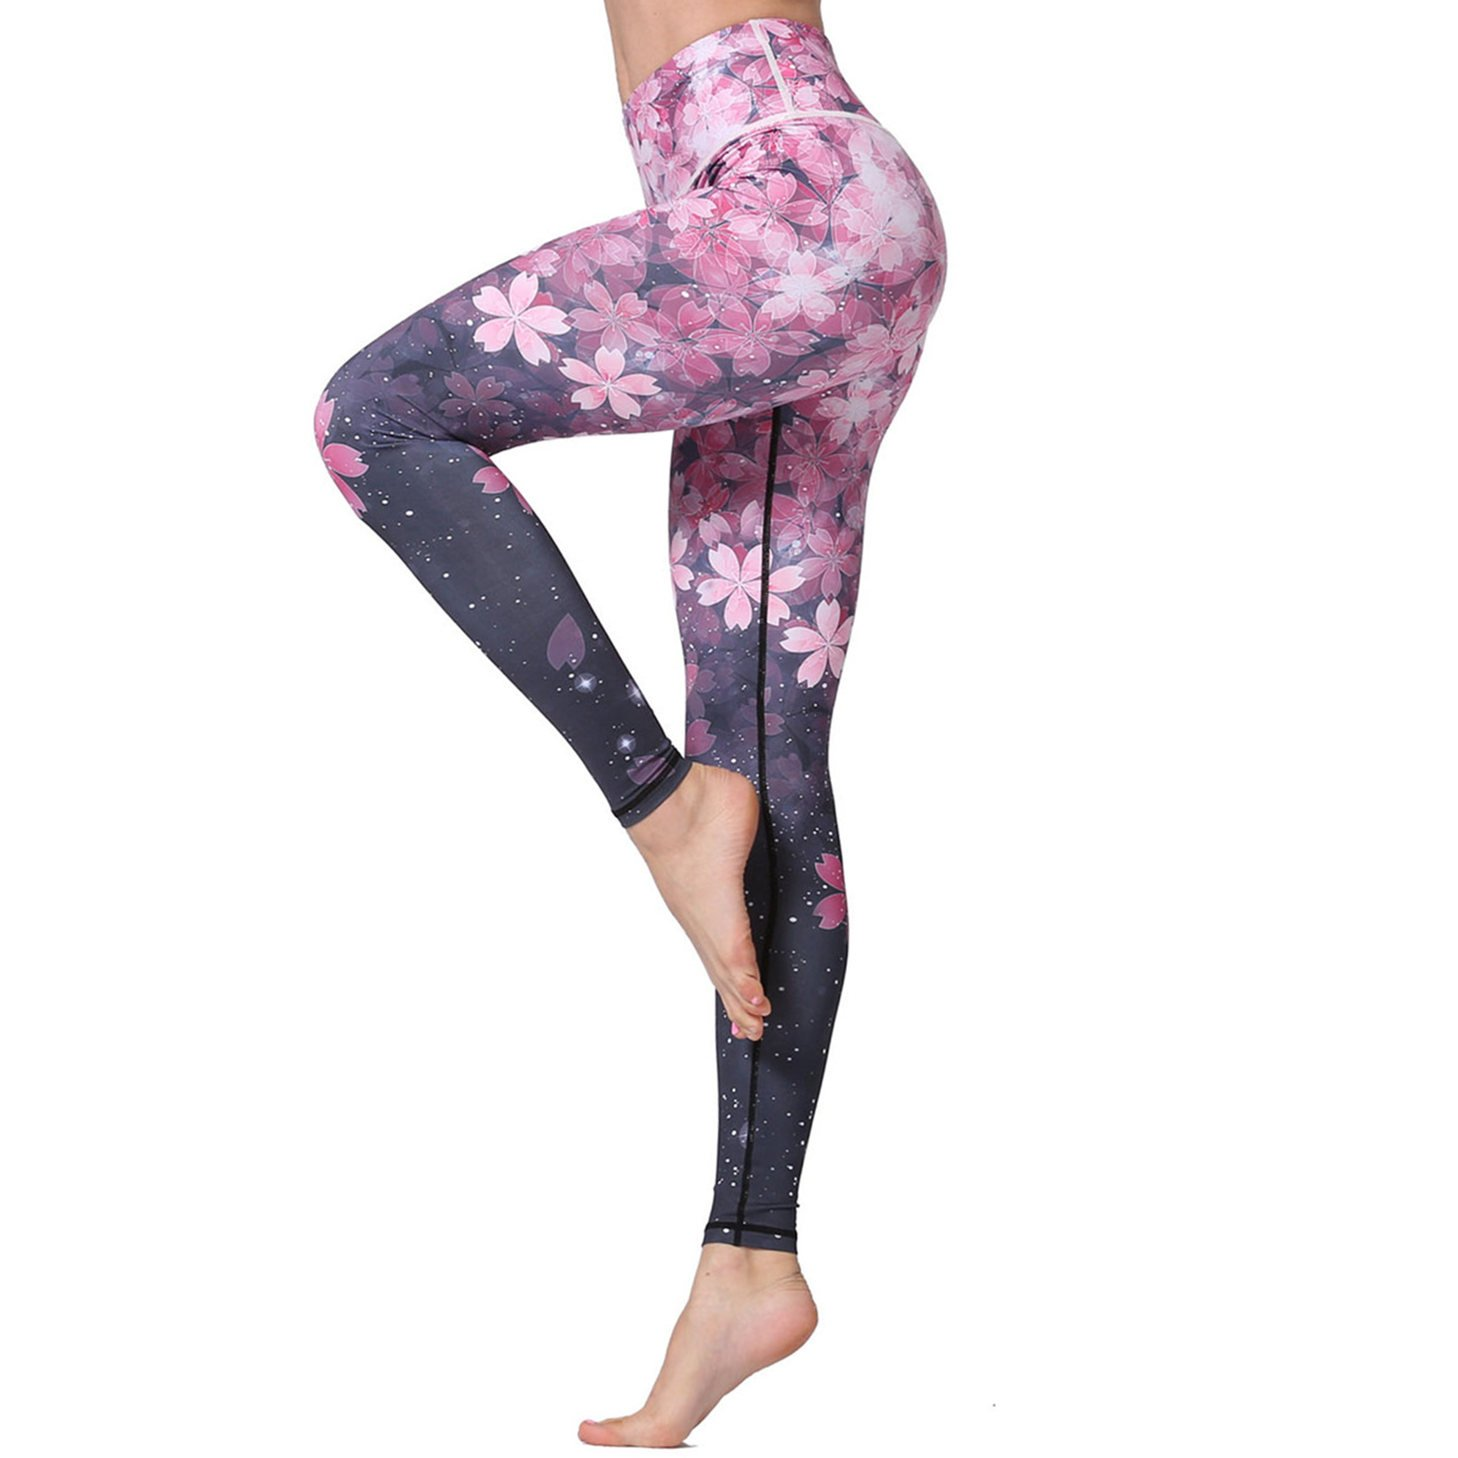 d549c11fd726 MTSCE Yoga Pants Printed Running Leggings Capris Yoga Capris for Fitness  Riding Running product image